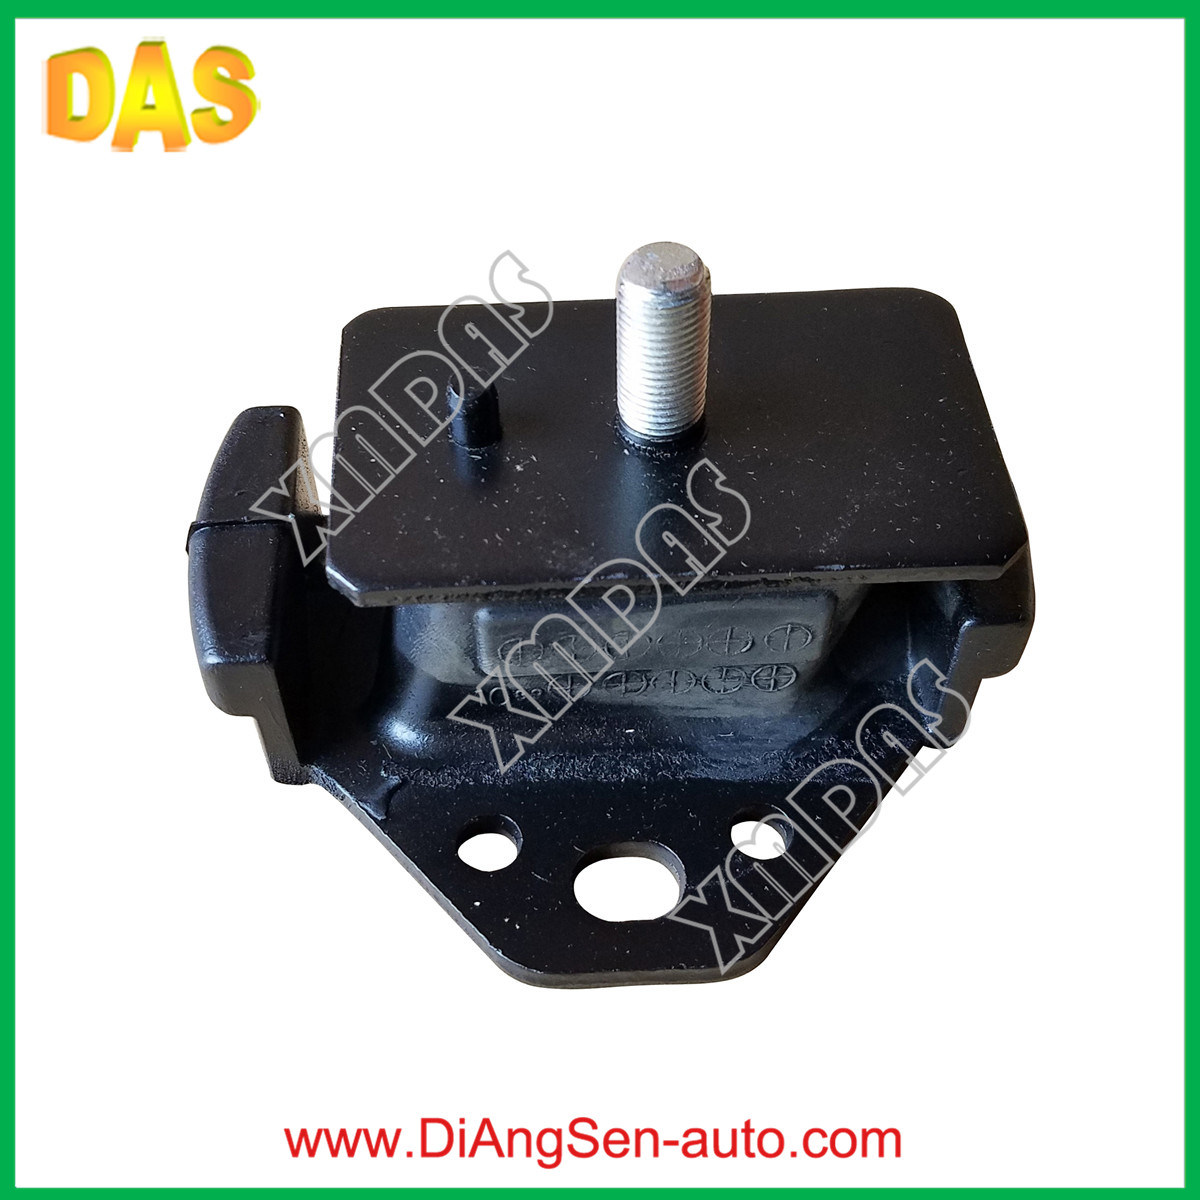 China Car Spare Parts Engine Mount For Toyota Hiace Lh112 12361 2009 Honda Ridgeline Suspension Control Arm Front Right Lower W0133 38130